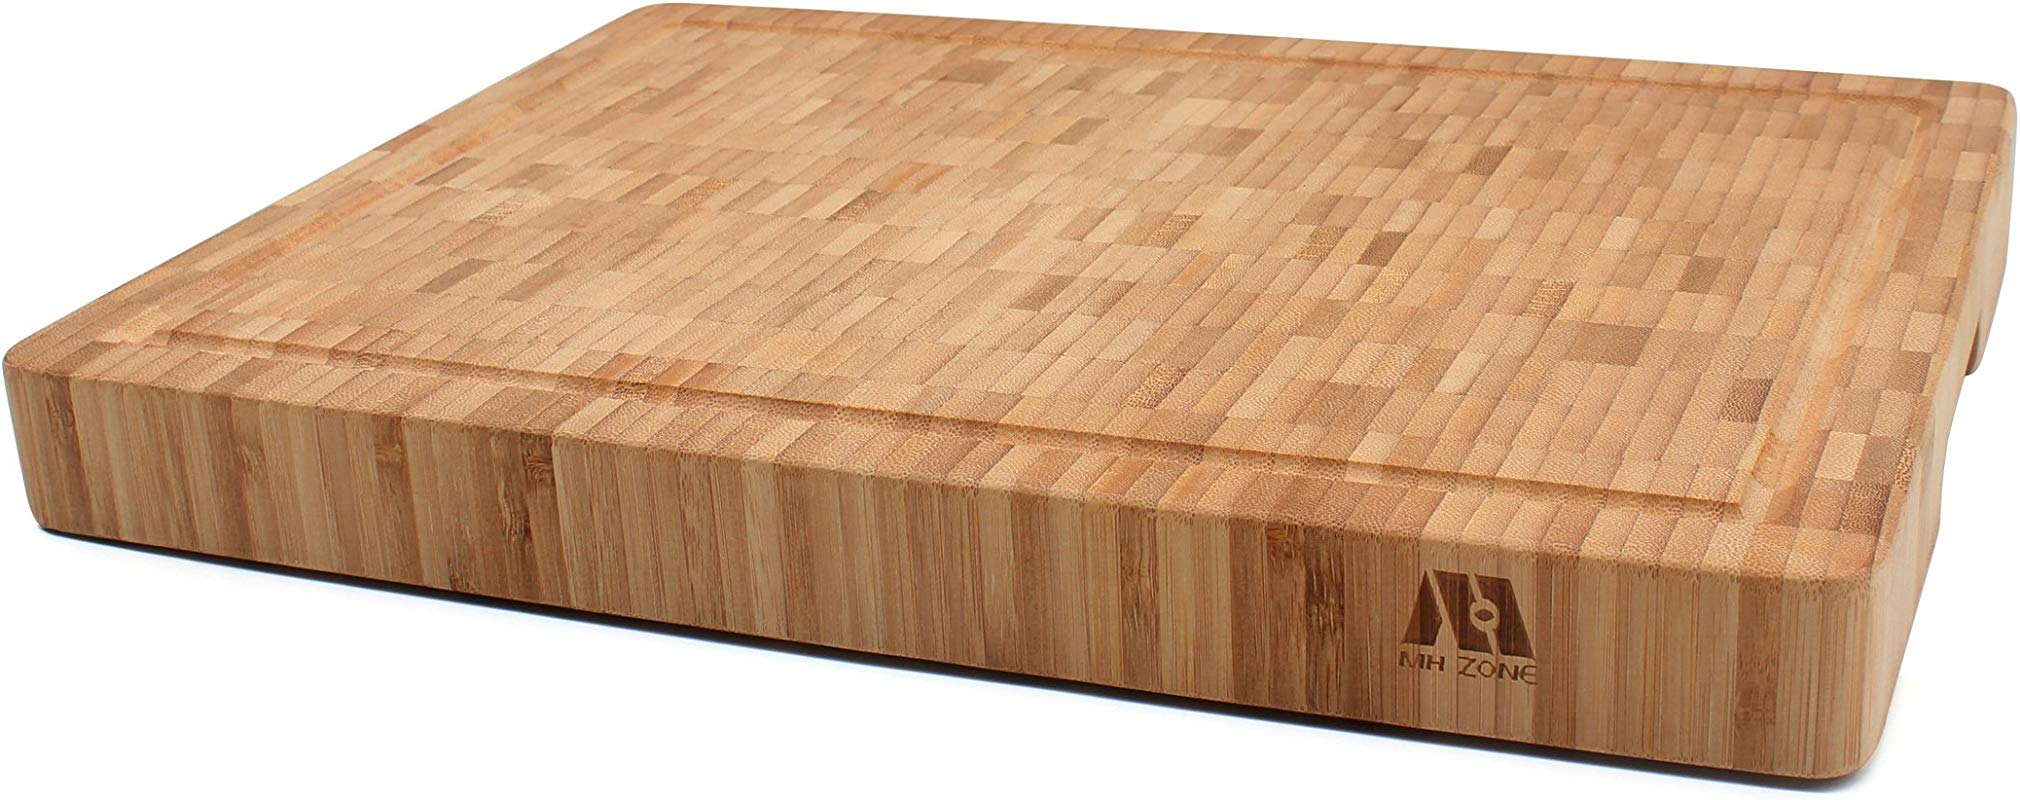 MH ZONE Large Thick 16 X 12 X 1 6 End Grain Bamboo Cutting Board For Kitchen Butcher Block Heavy Duty Chopping Board With Juice Grooves And Handles Perfect Christmas Gifts